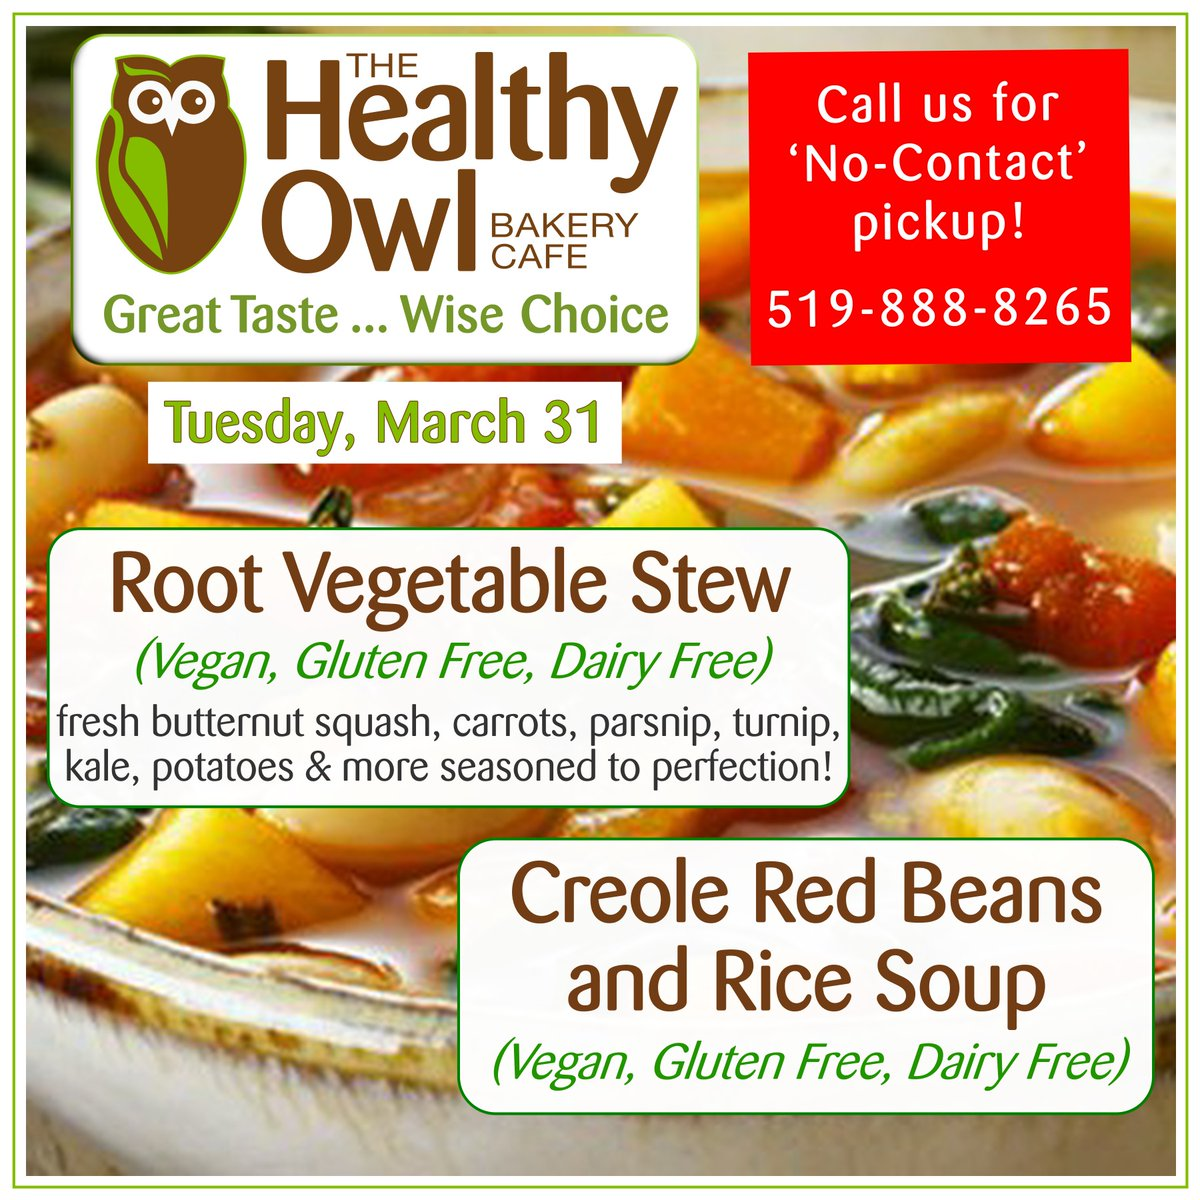 Remember, we do offer non-contact pick-up and our sanitizing procedures are second to none!  Soup & Feature for Tuesday #realfood #glutenfree #dairyfree #kwvegan #kwvegetarian #kwawesome #wrawesome http://thehealthyowl.capic.twitter.com/ttrwJmWQqv